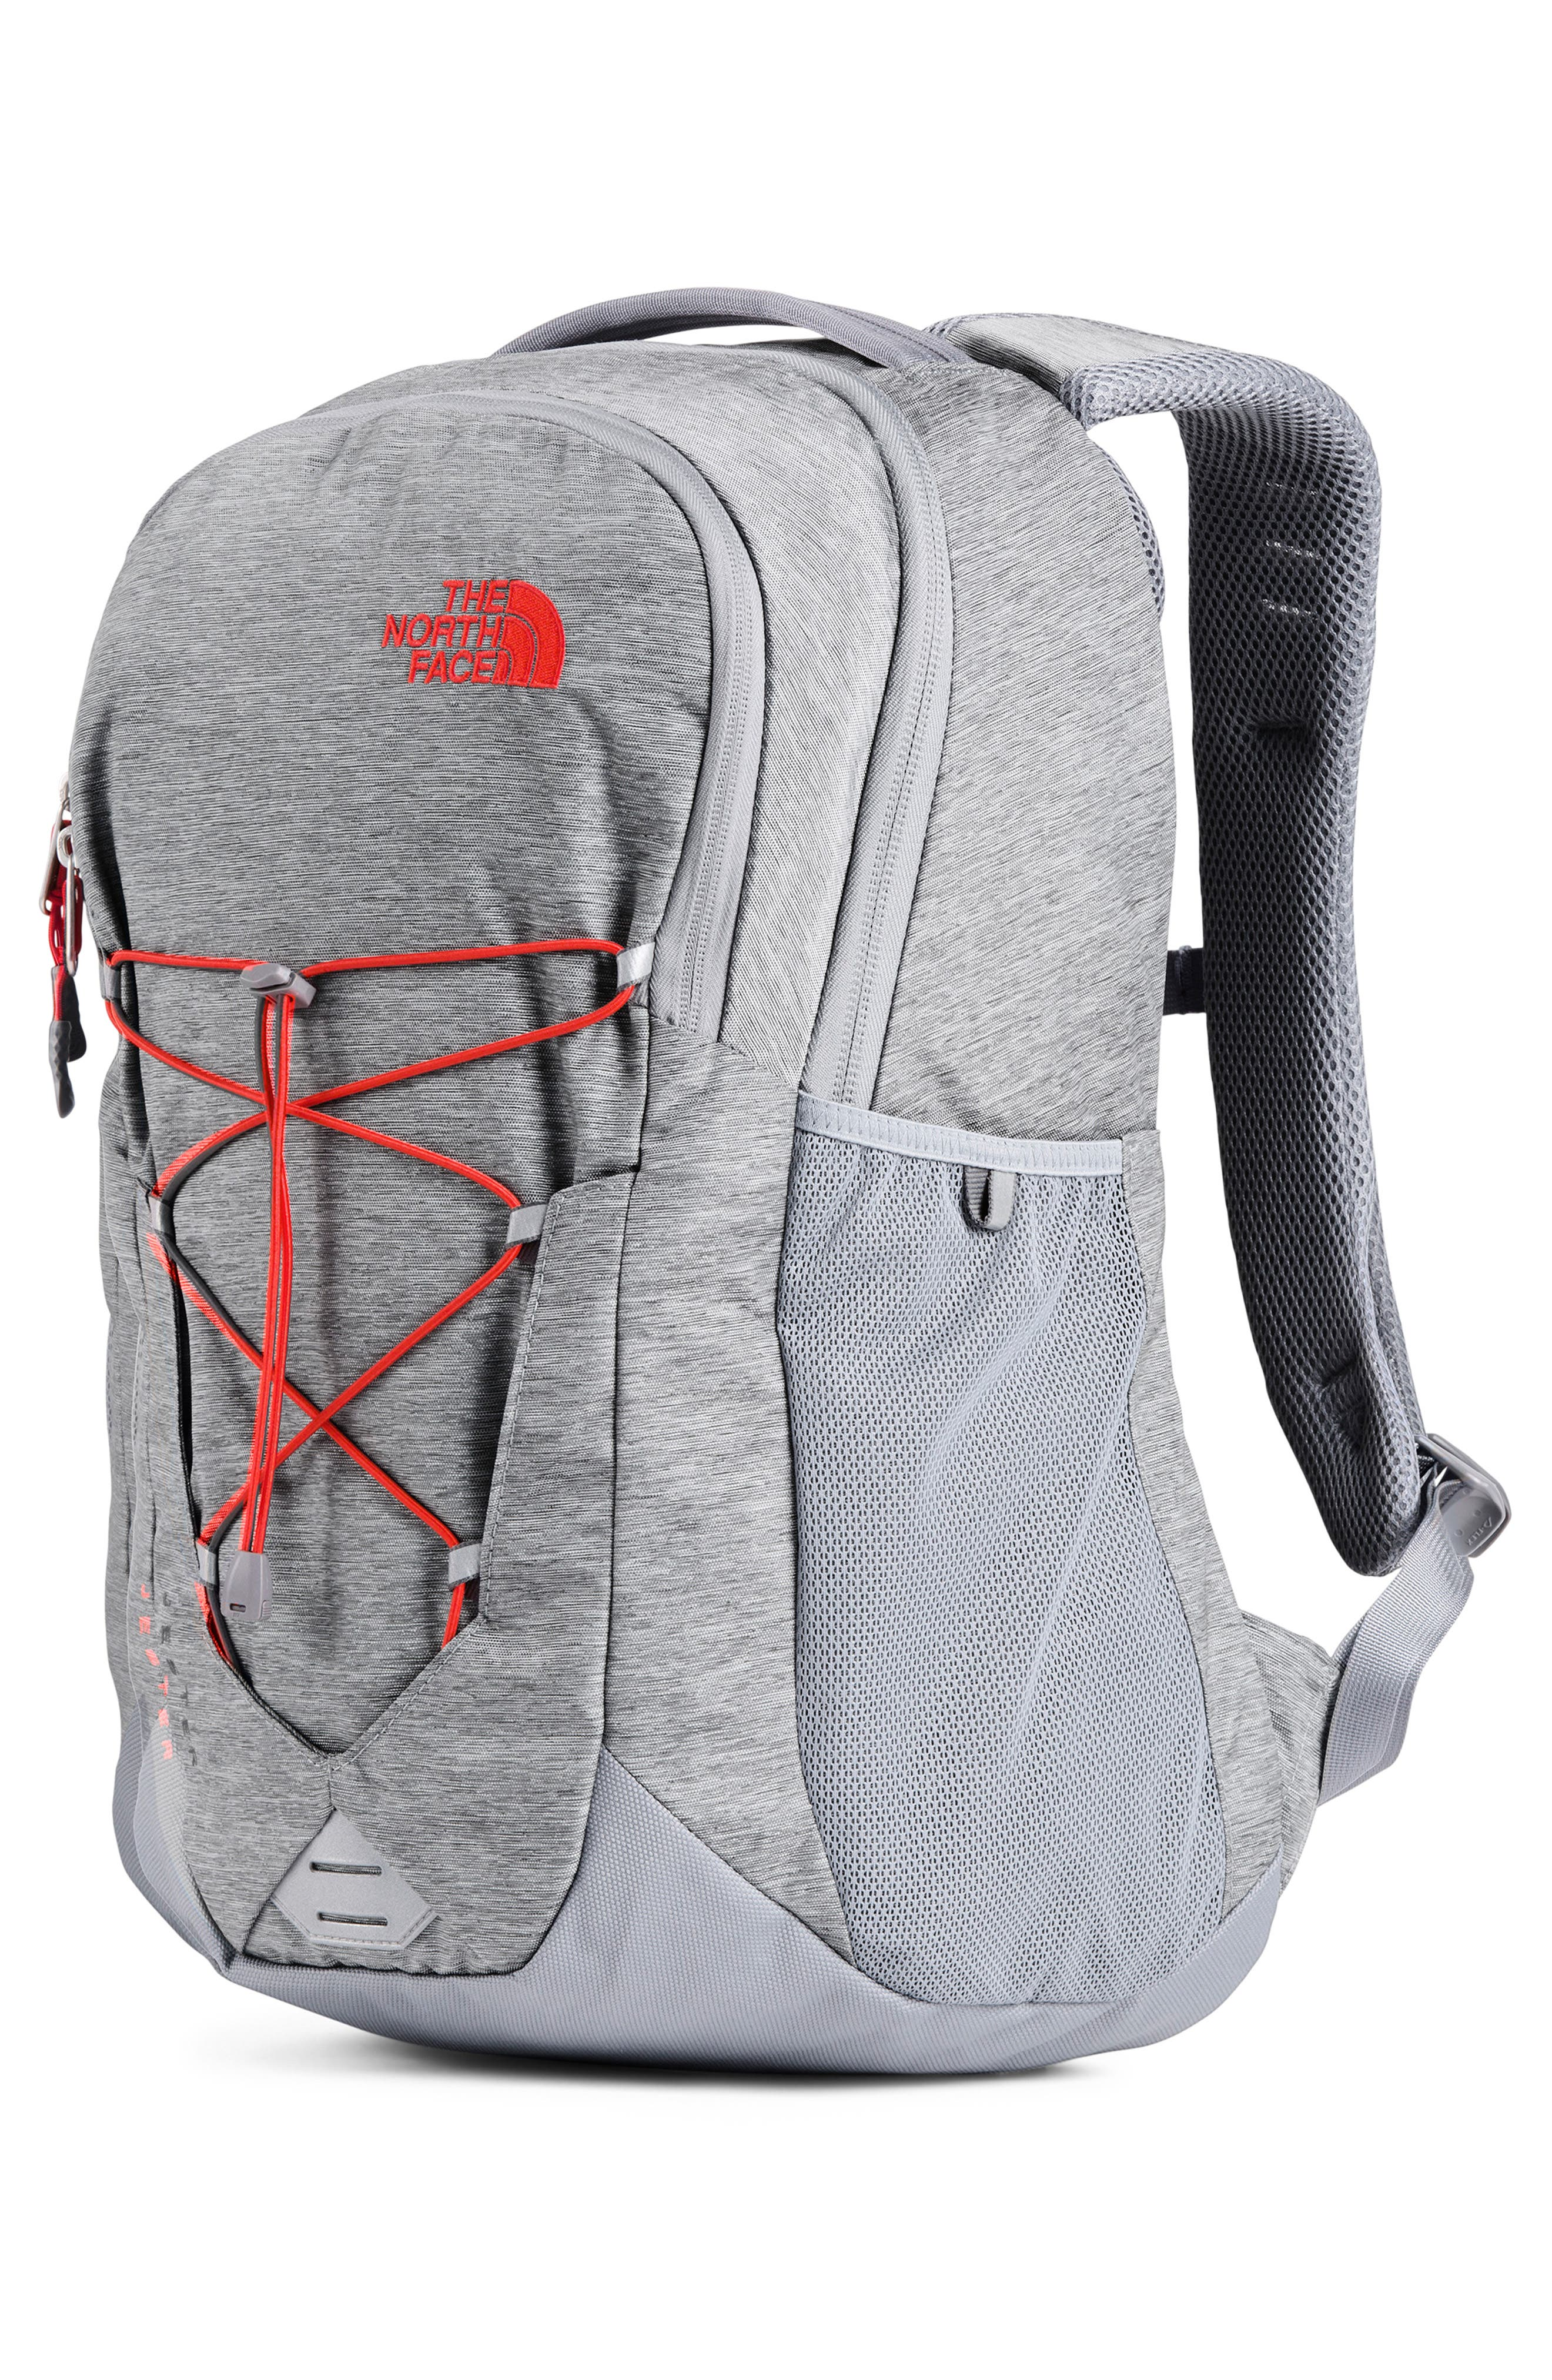 THE NORTH FACE, Jester Backpack, Alternate thumbnail 5, color, GREY DARK HEATHER/FIERY RED